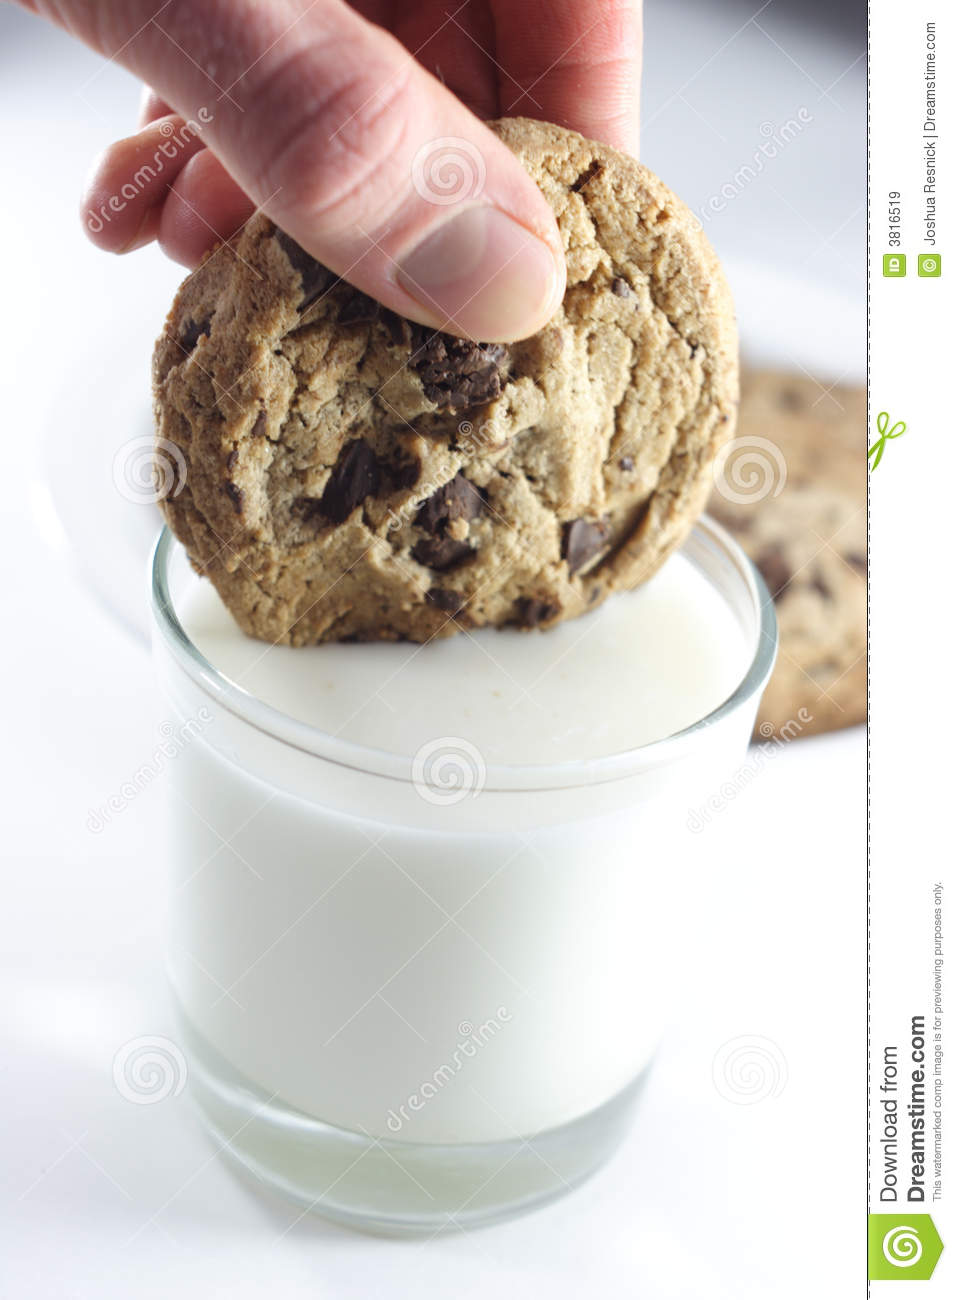 dipping cookie in milk stock image image of consume chocolate chip cookie clipart chocolate chip cookie clip art no background